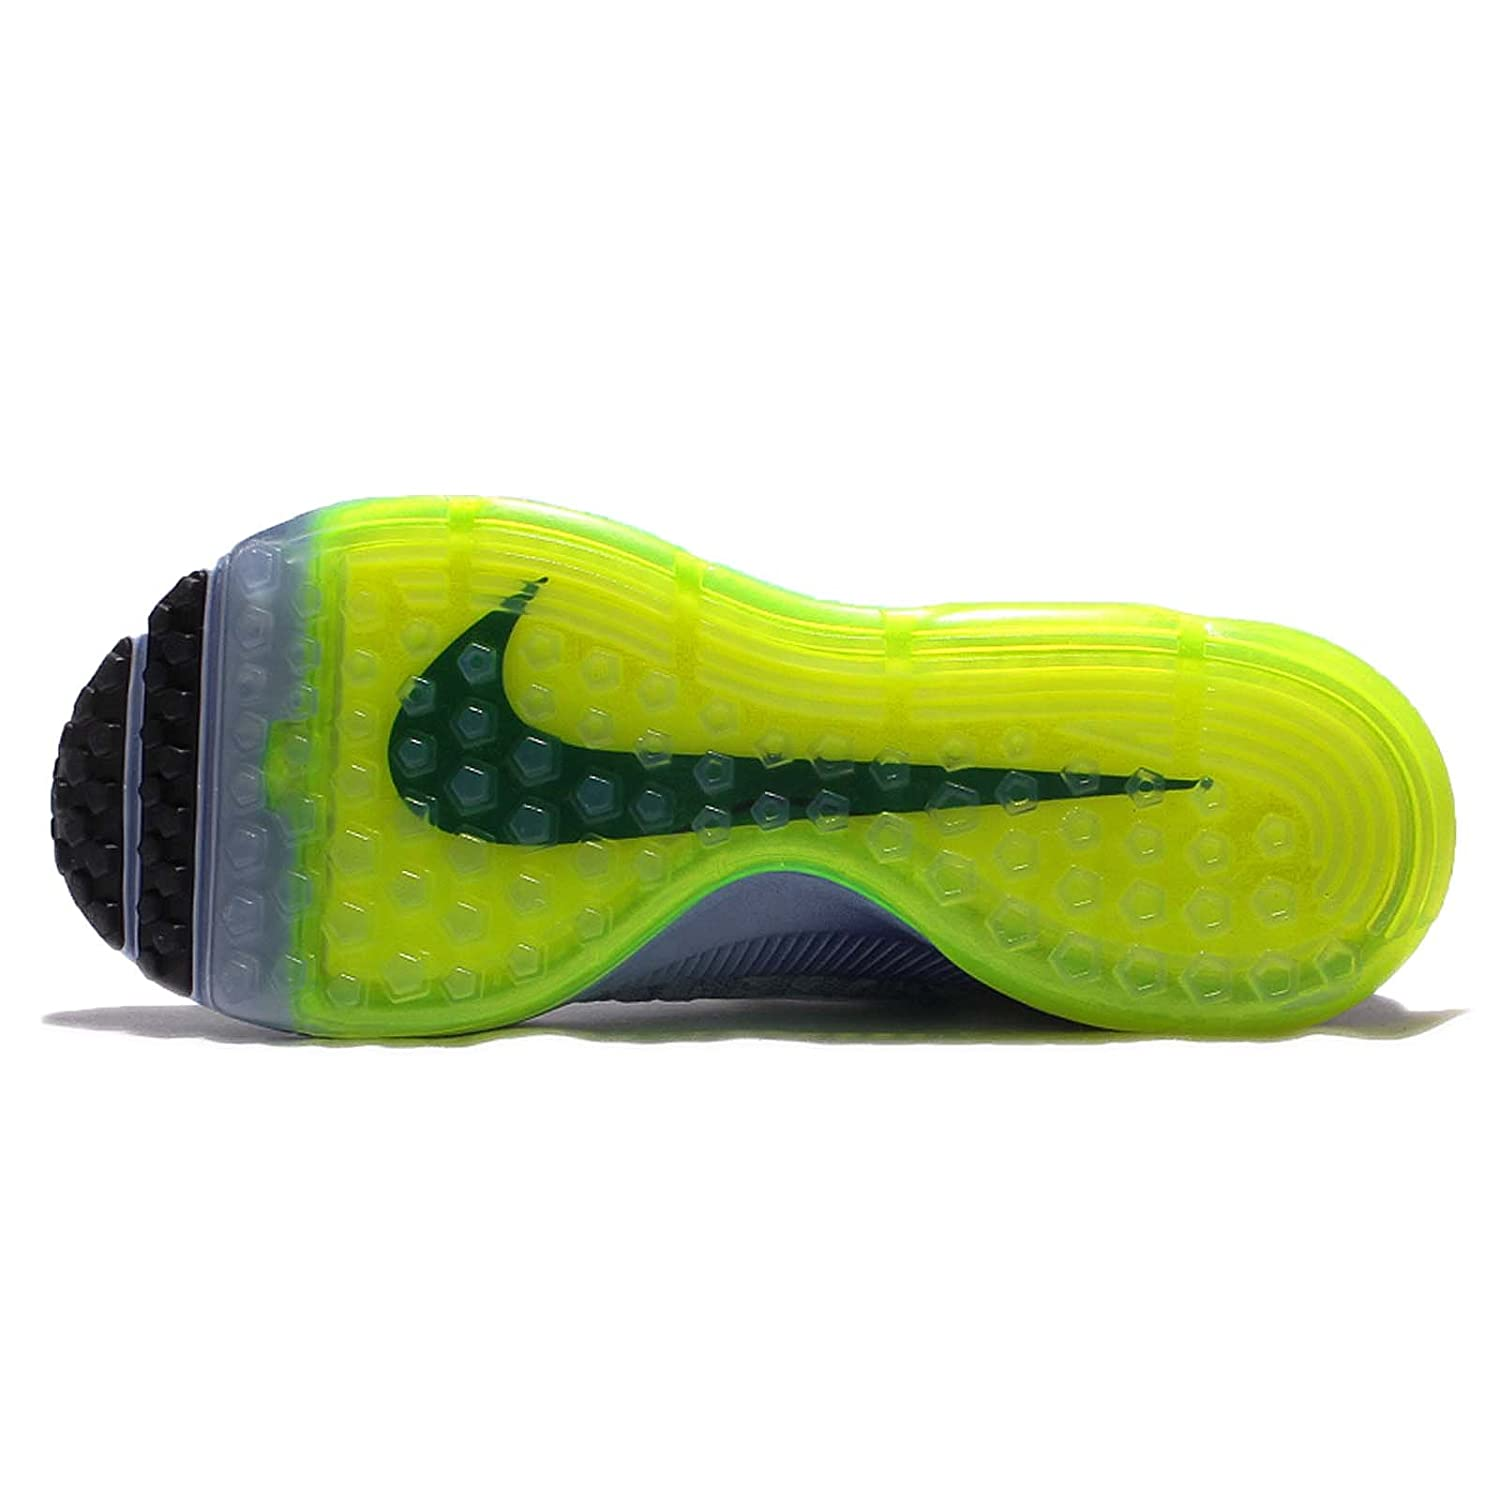 Nike Women's Zoom All Out Flyknit Running Shoes B01M1JEXCH 9 B(M) US Bluecap/White-deep Royal Blue